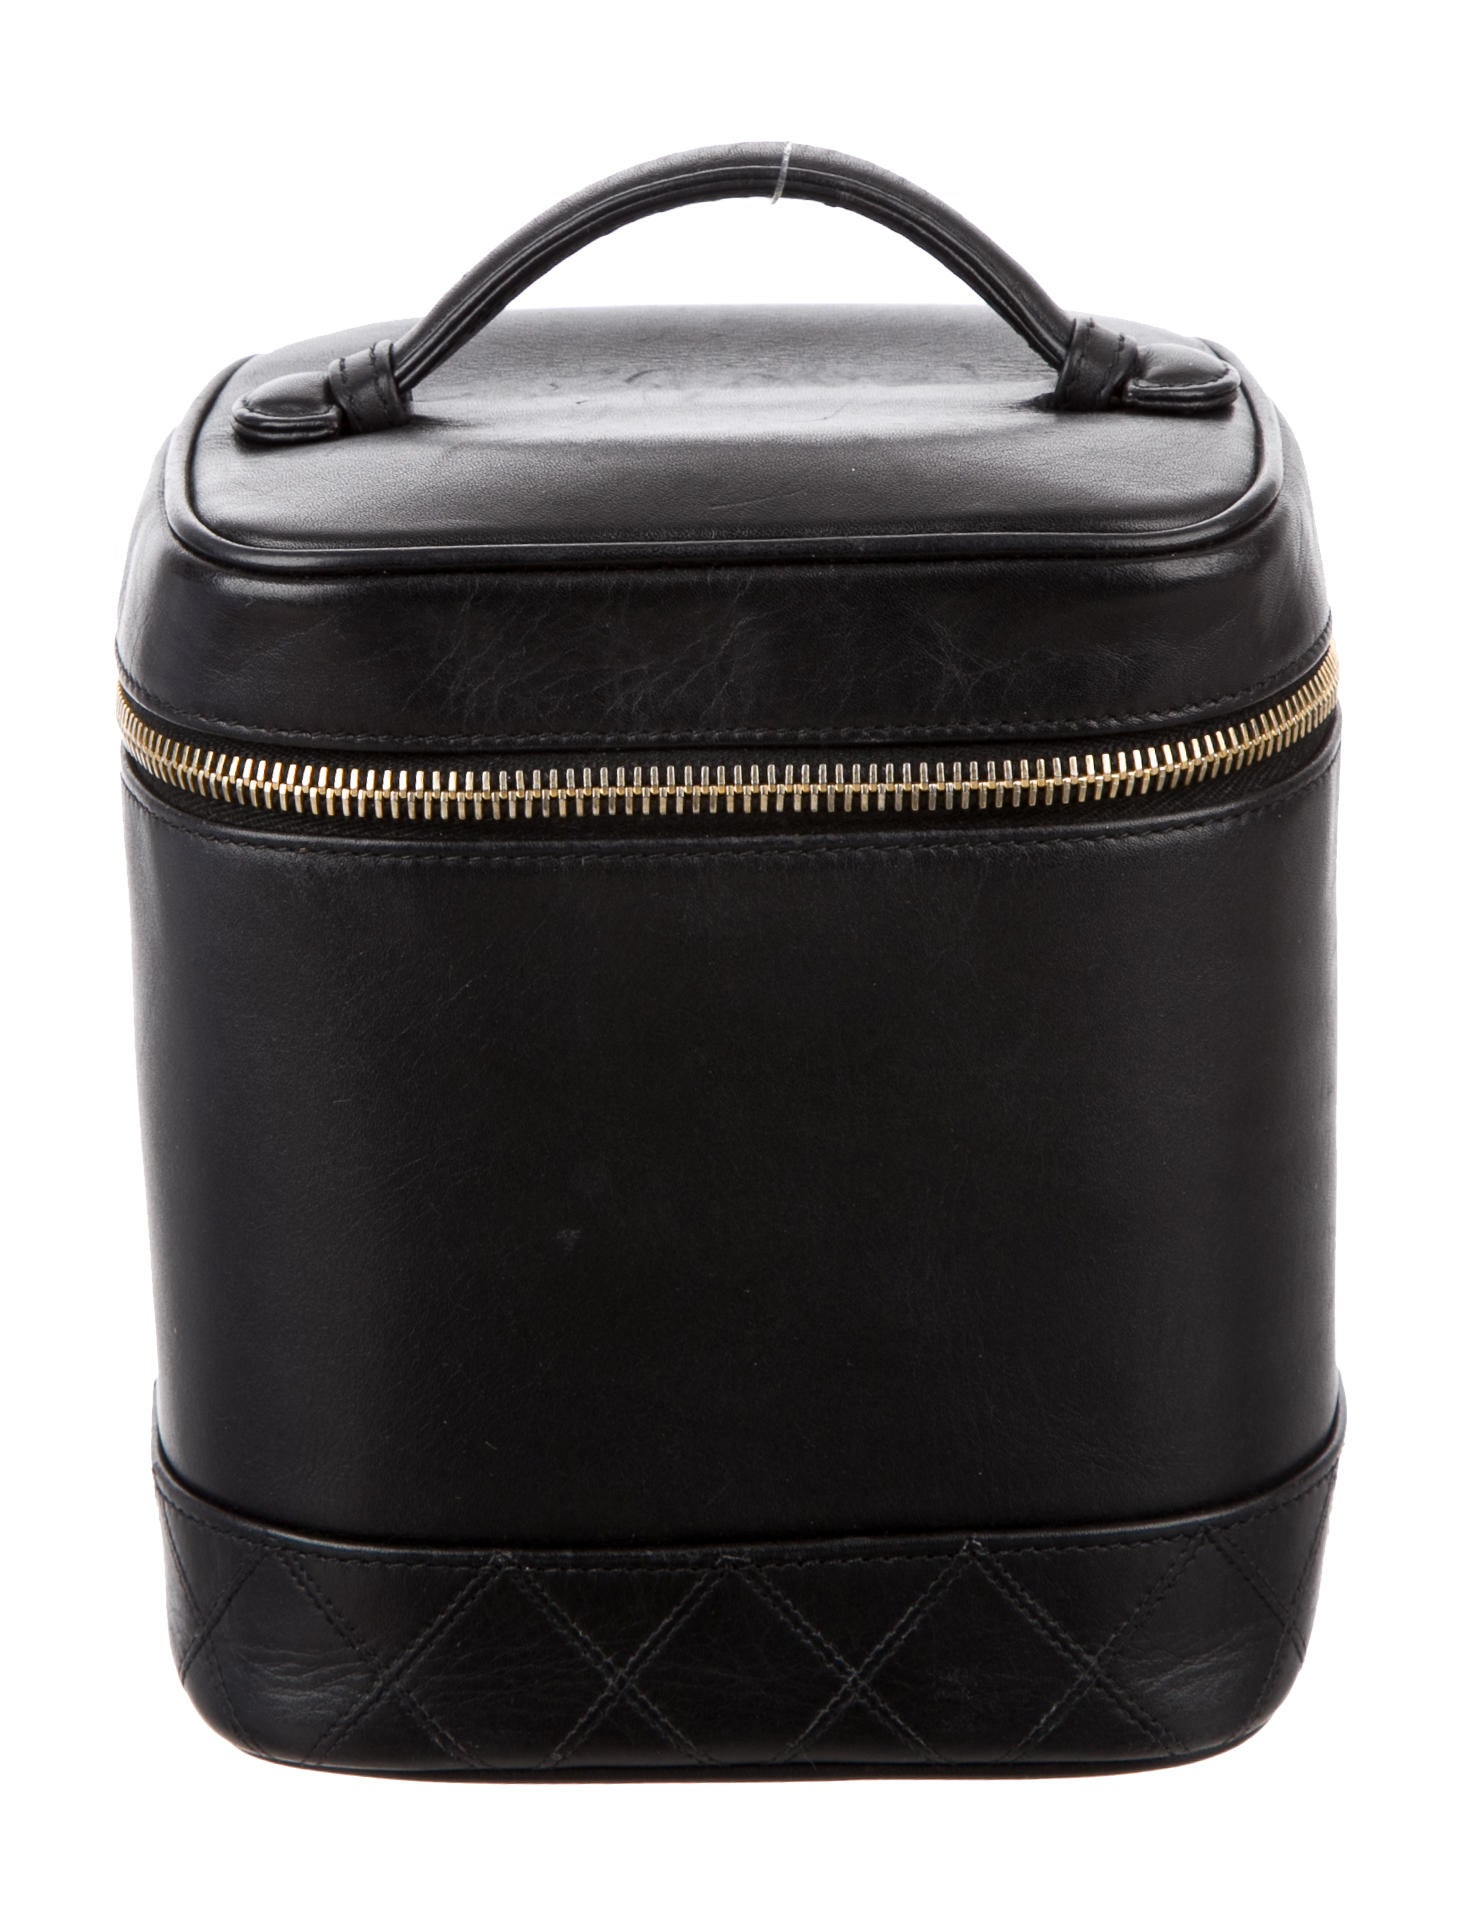 Chanel Quilted Vanity Case - Accessories - CHA152368 | The ...